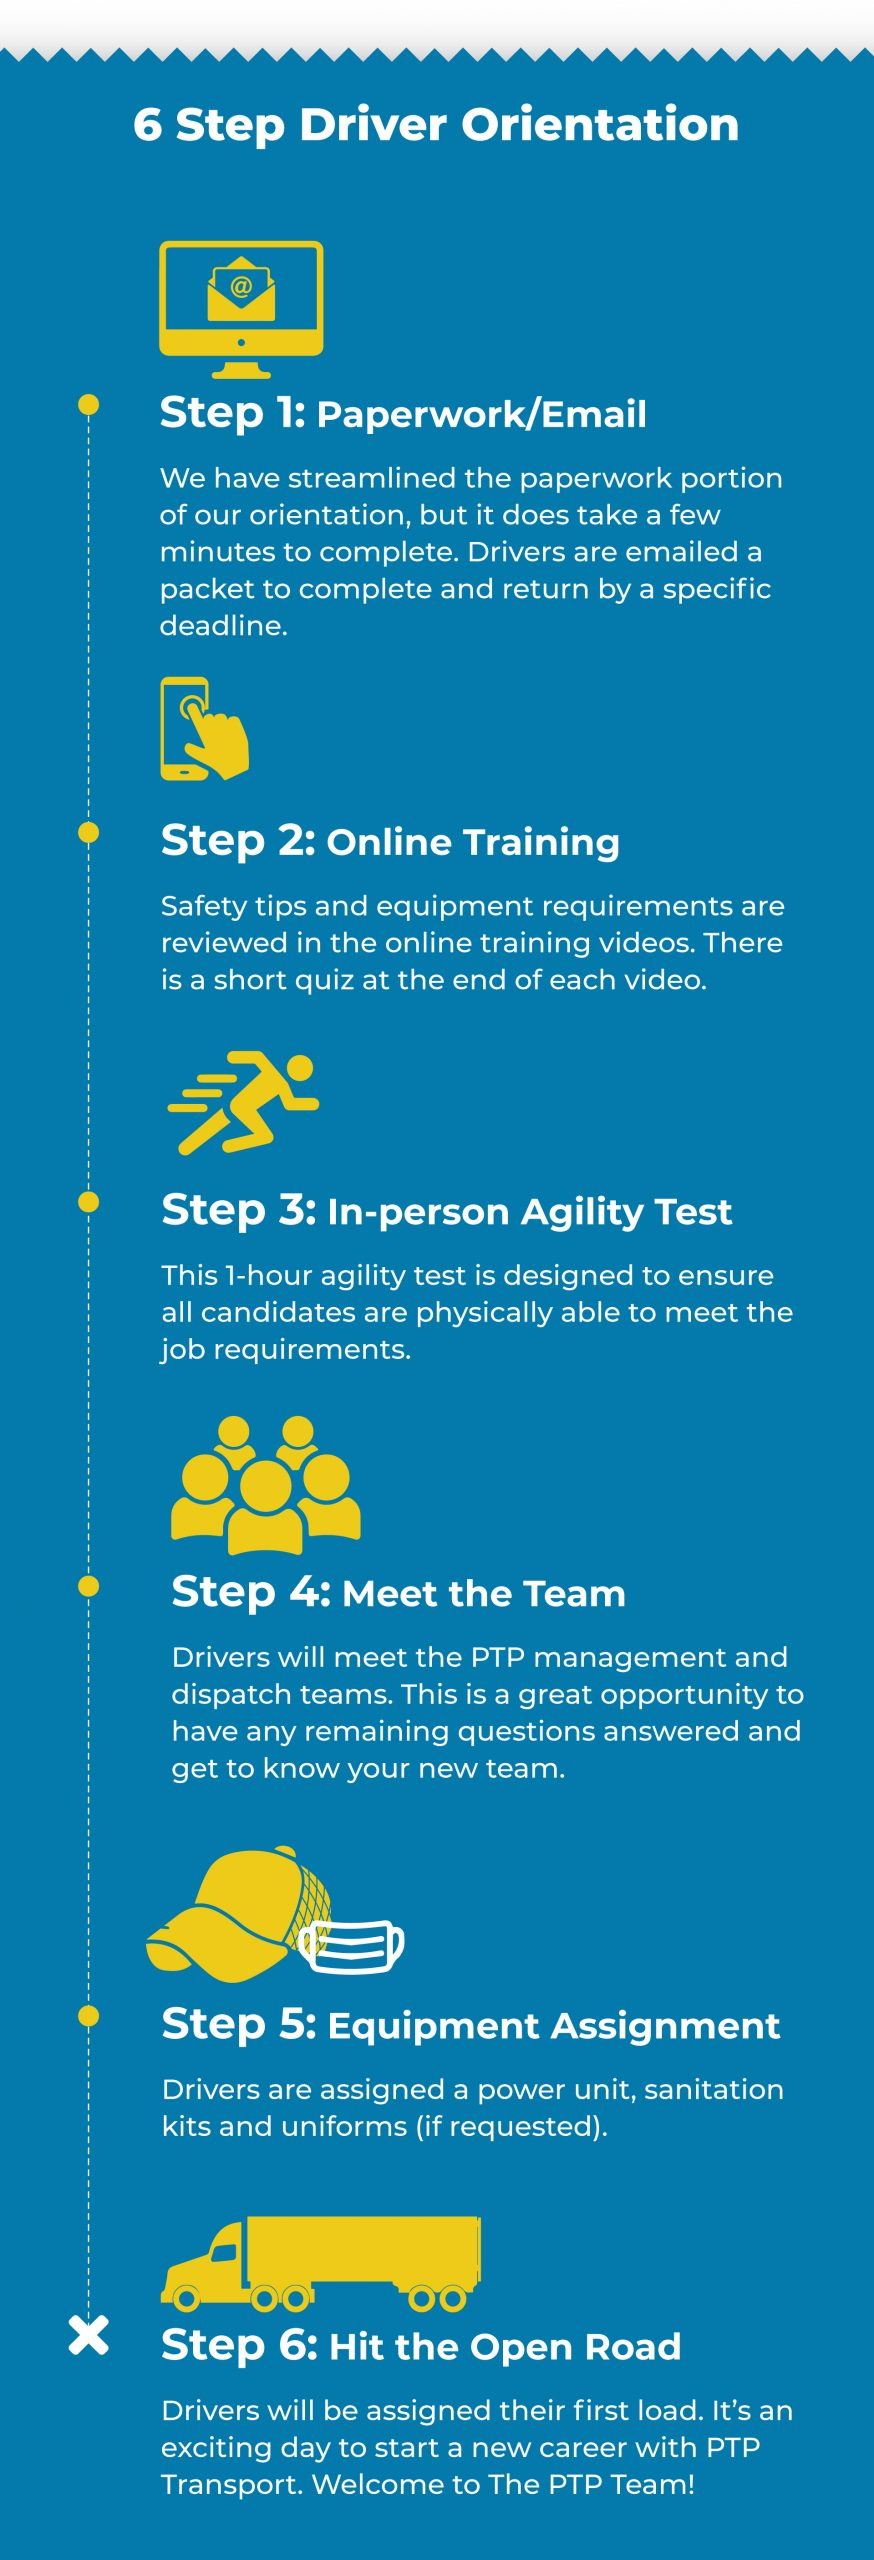 6 Step Driver Orientation Infographic